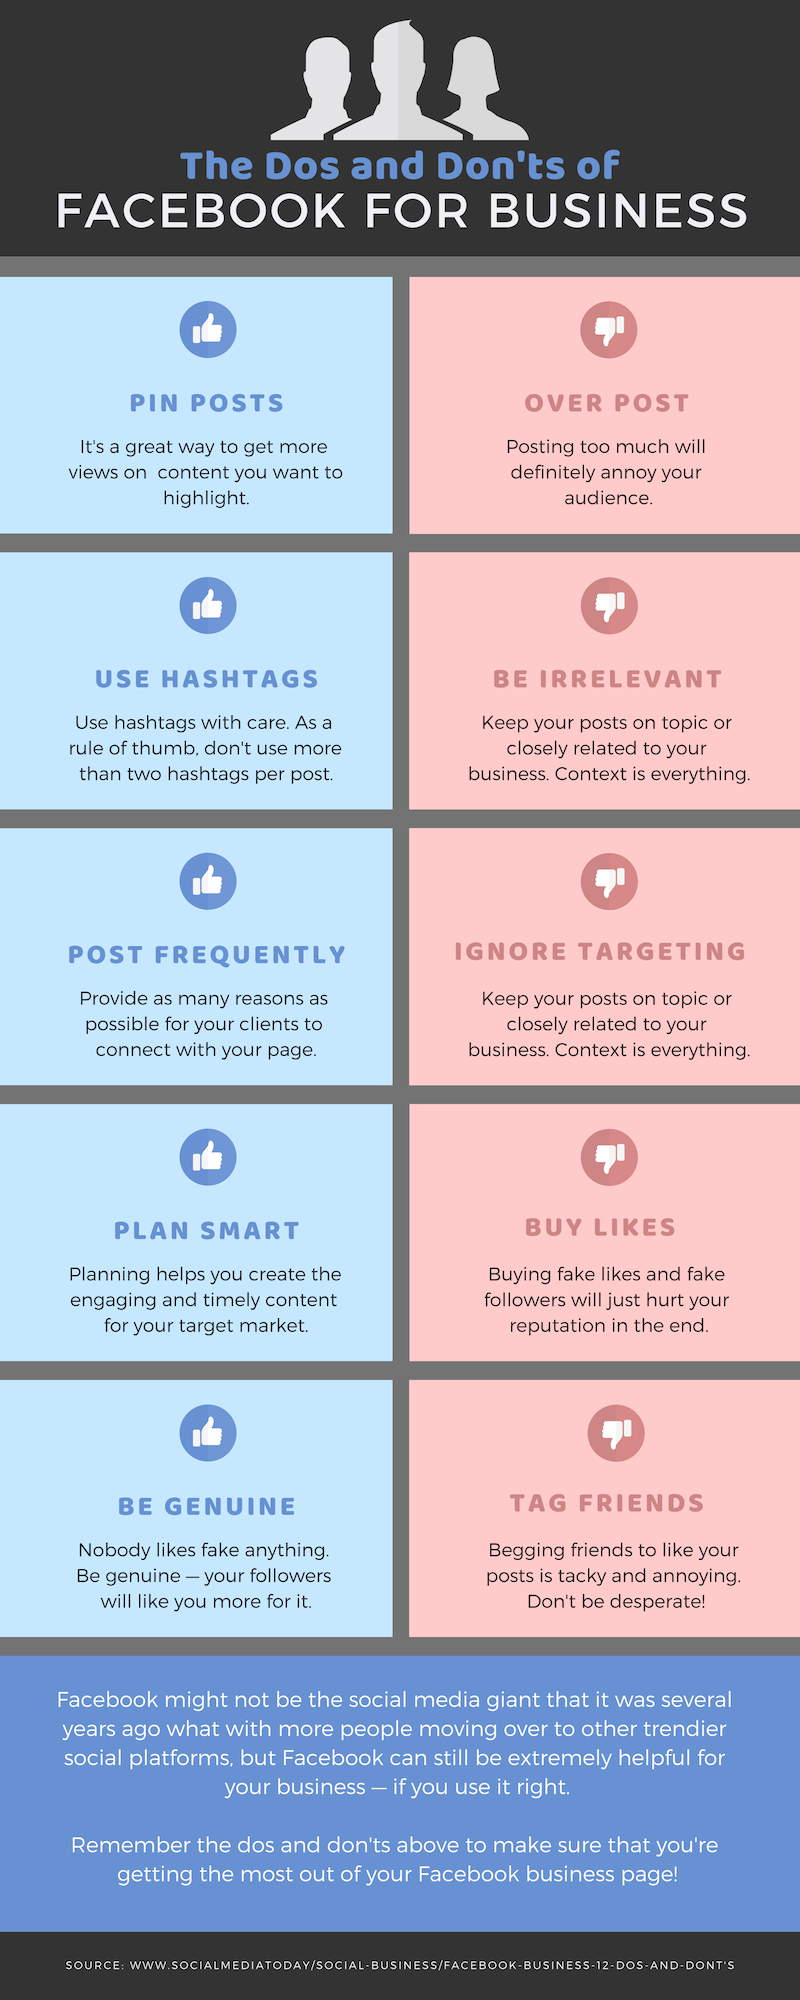 The Dos and Dont's of Facebook for Business